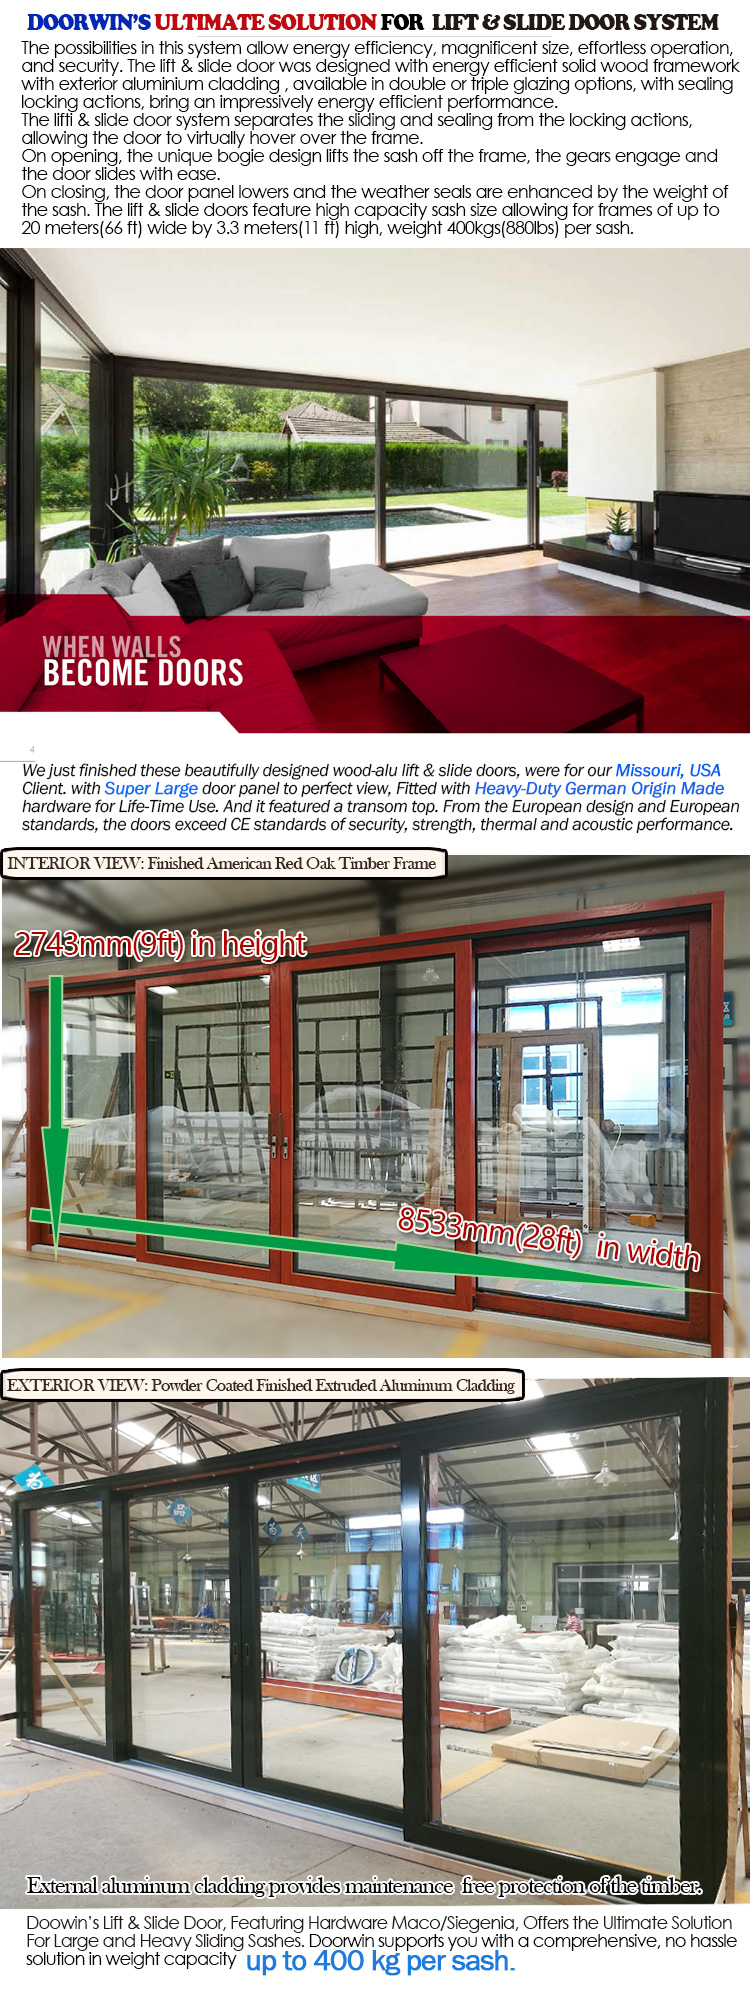 Texas Garage door design aluminum sliding lock frosted glass glazed fireproof